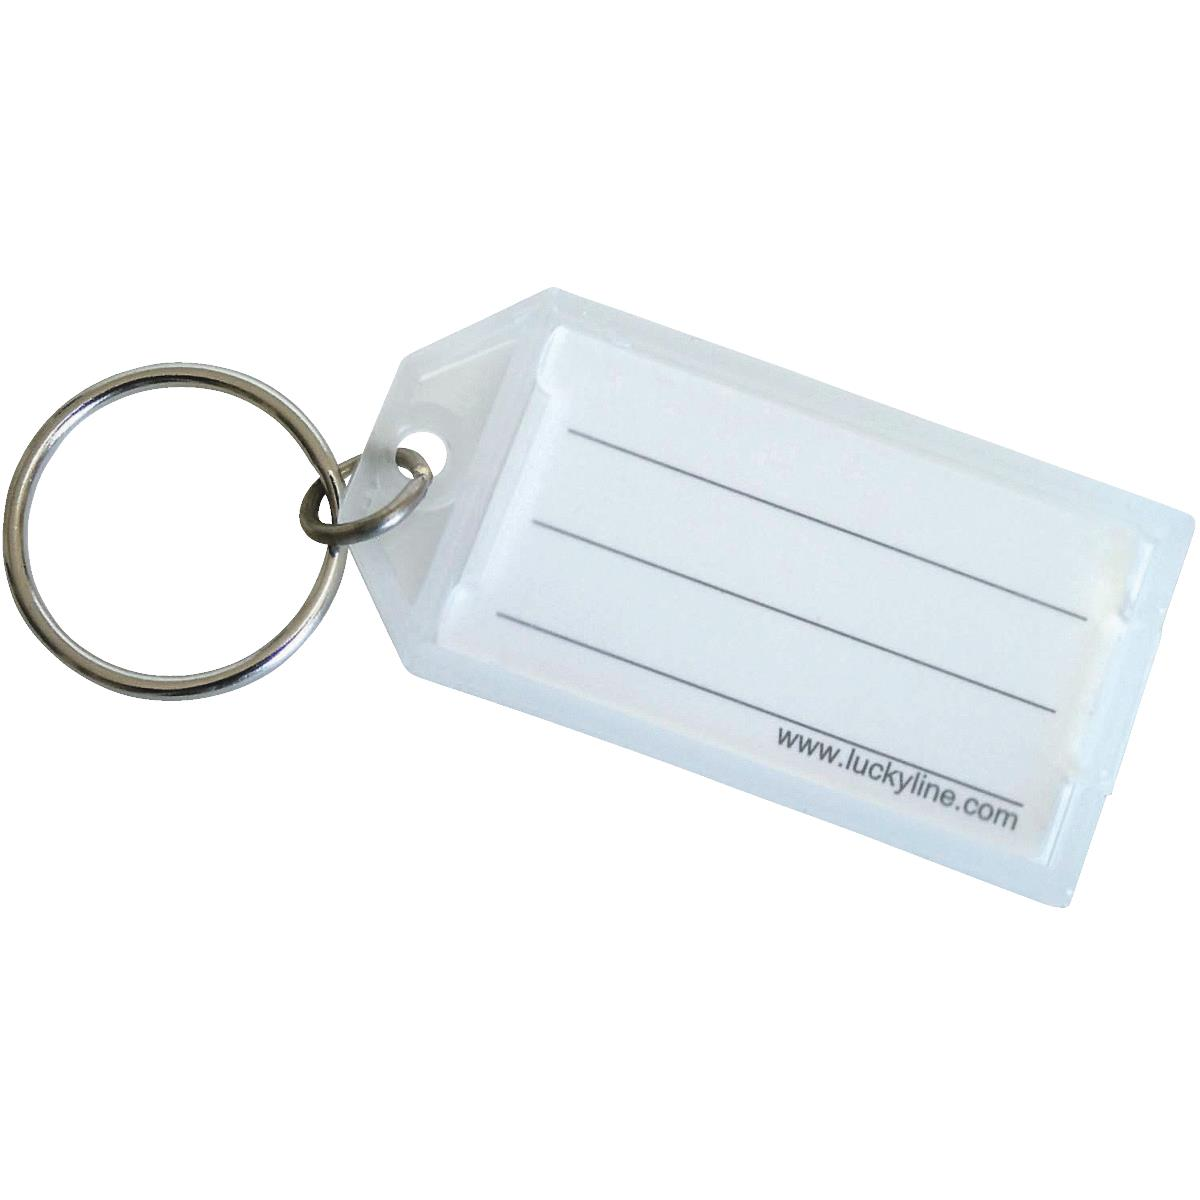 I.D. Key Tag With Ring